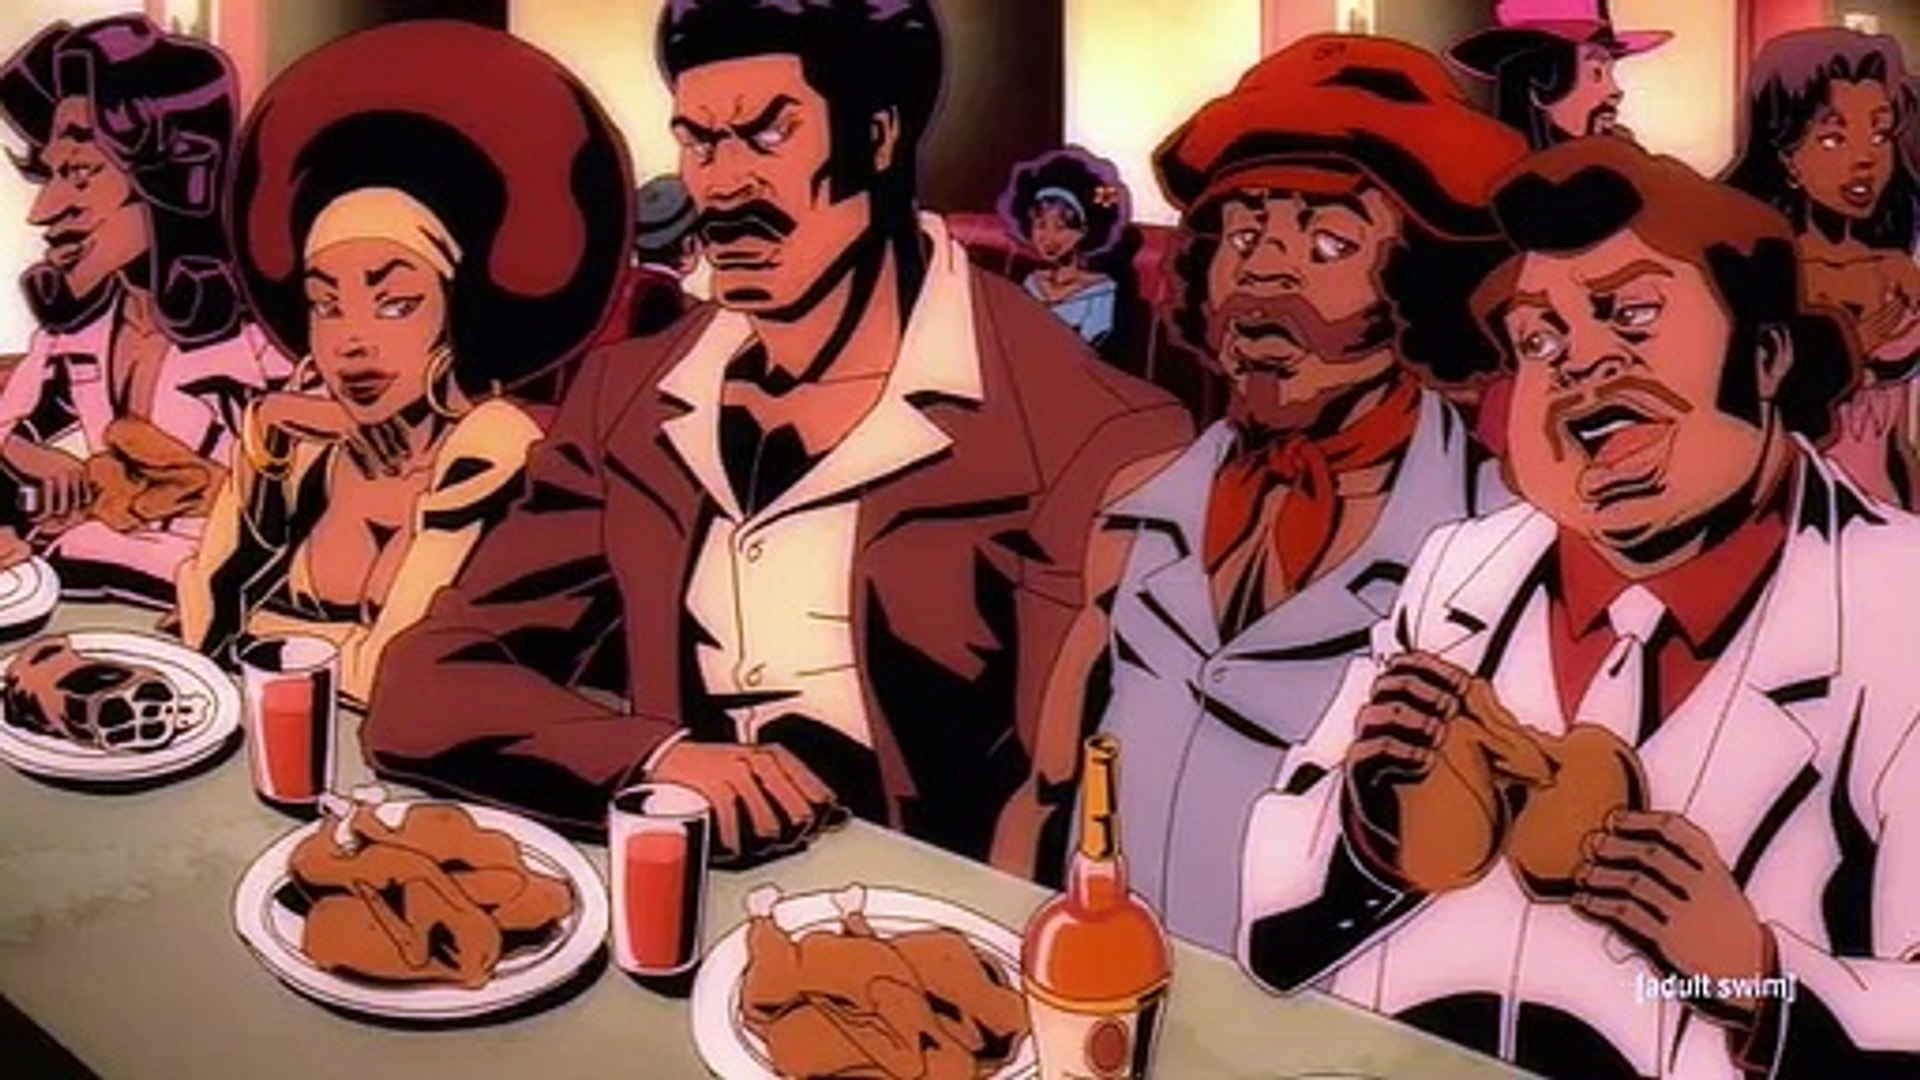 Black Dynamite S02 E01  Roots  The White Album  or  The Blacker the Community the Deeper the Roots